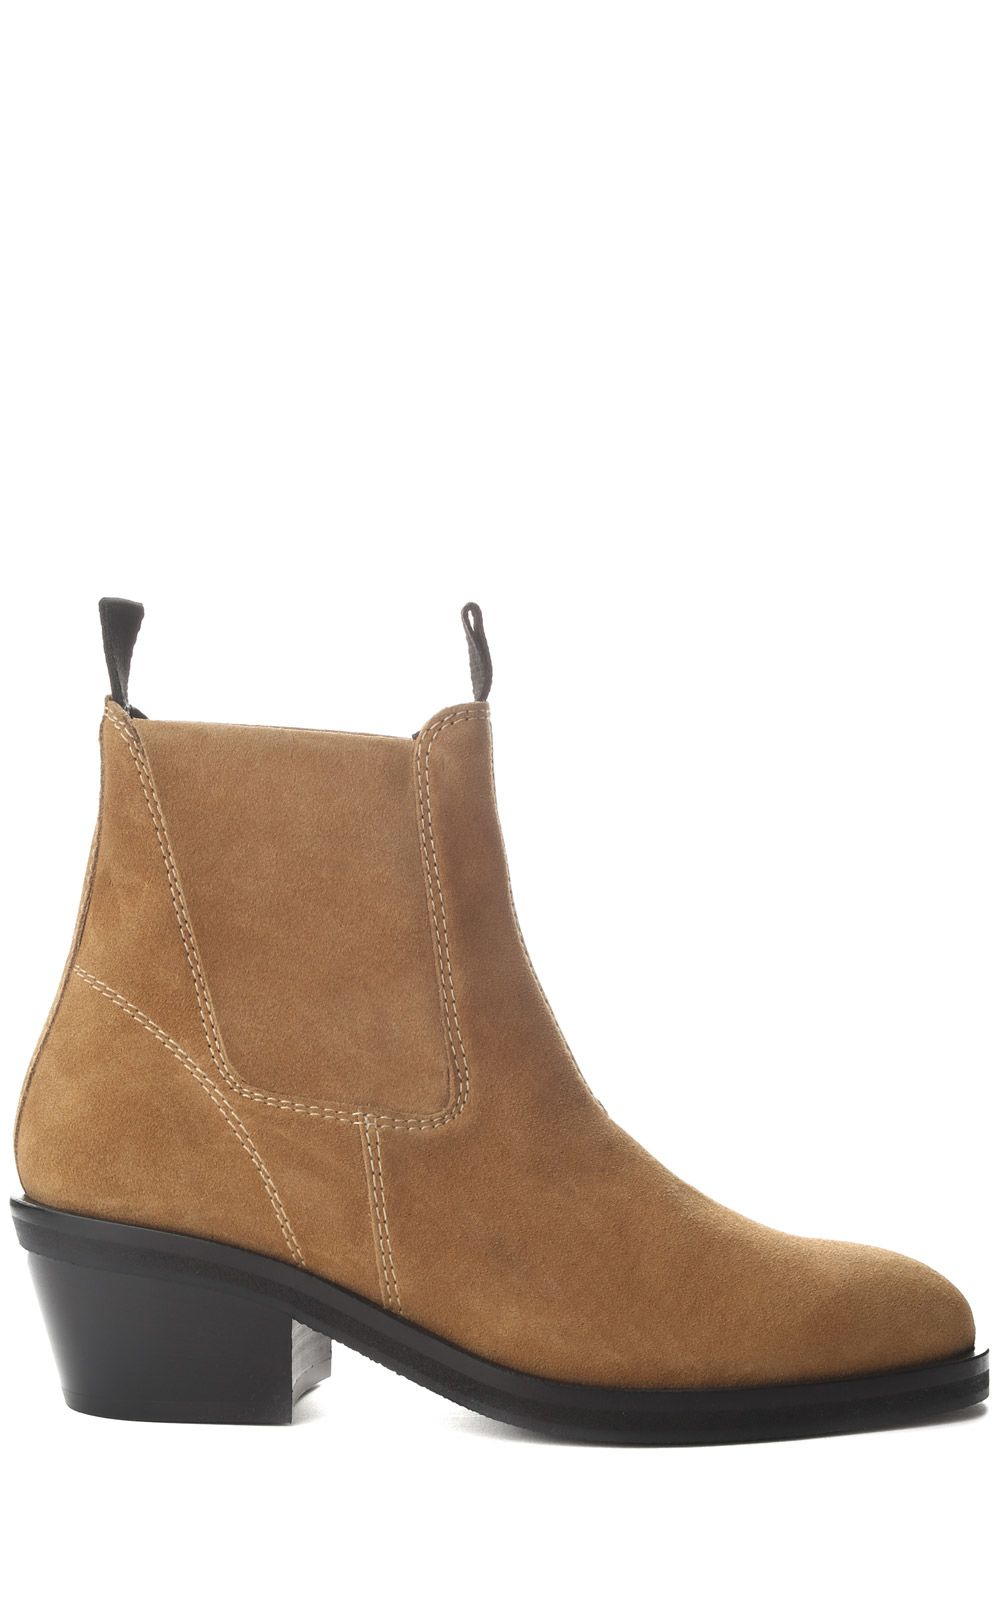 Acne Studios | Acne Studios Chelsea Suede Ankle Boots | Clouty